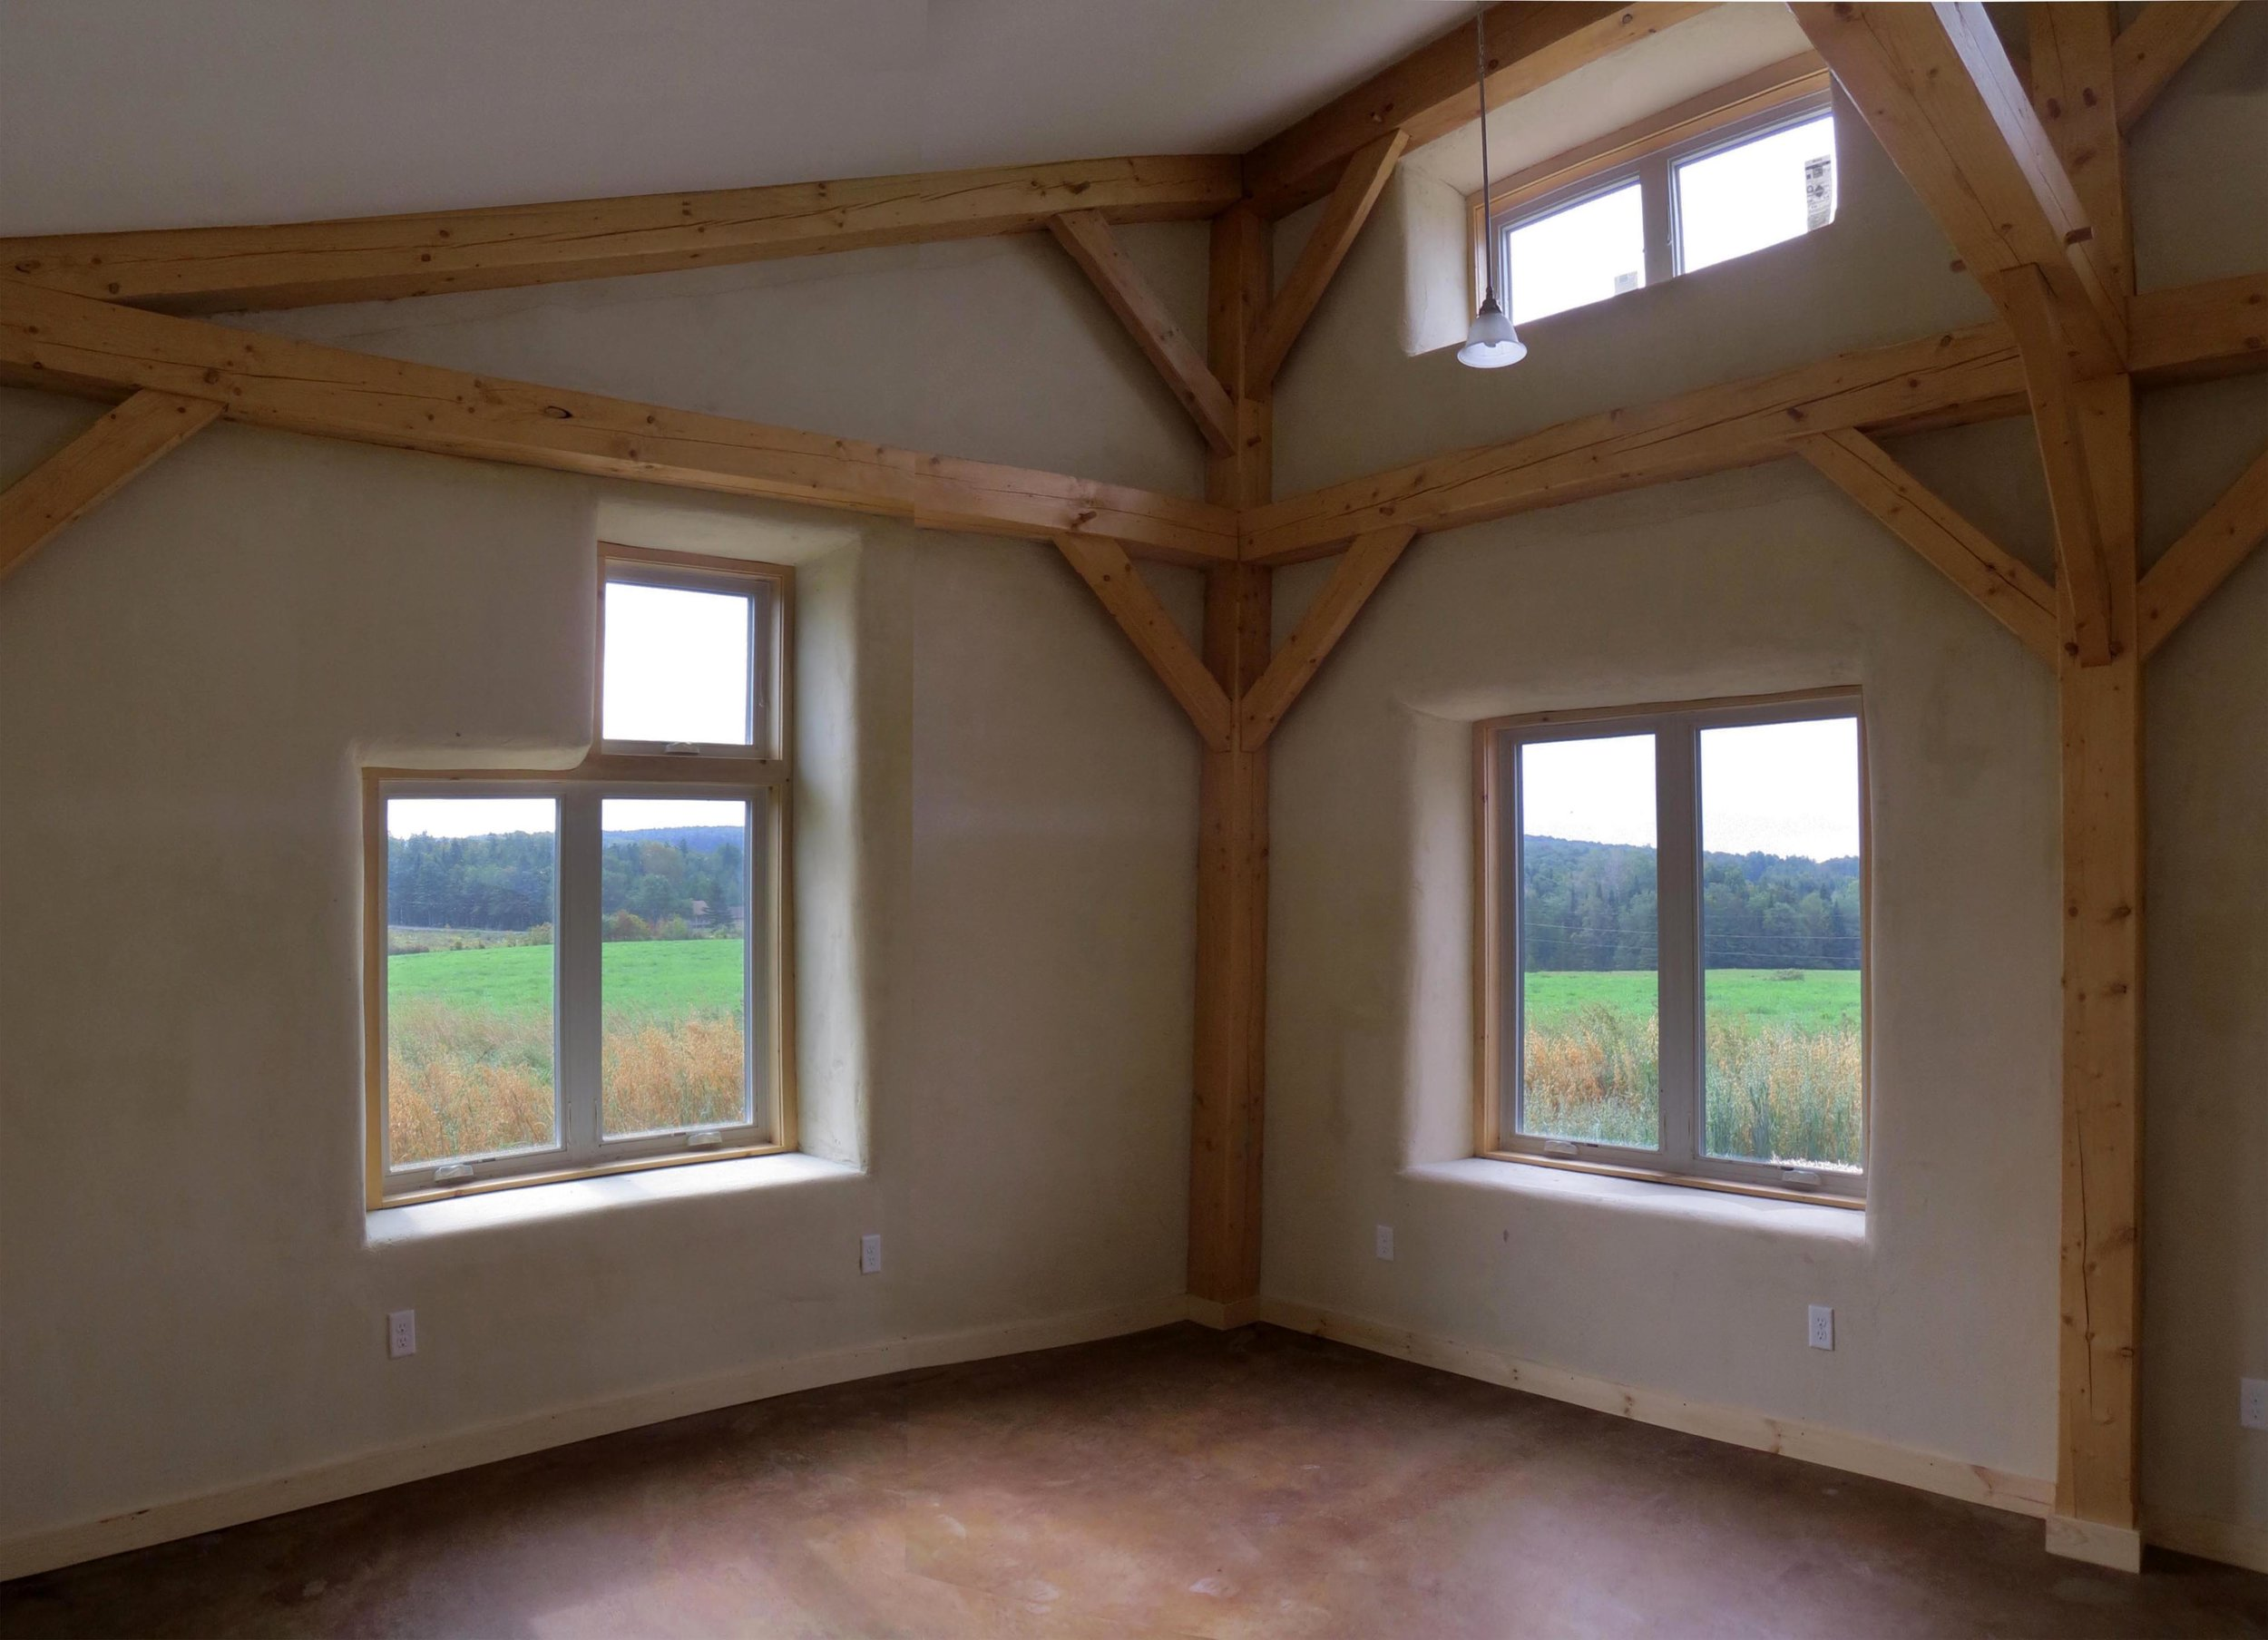 View of interior living area looking out onto the meadow beyond.